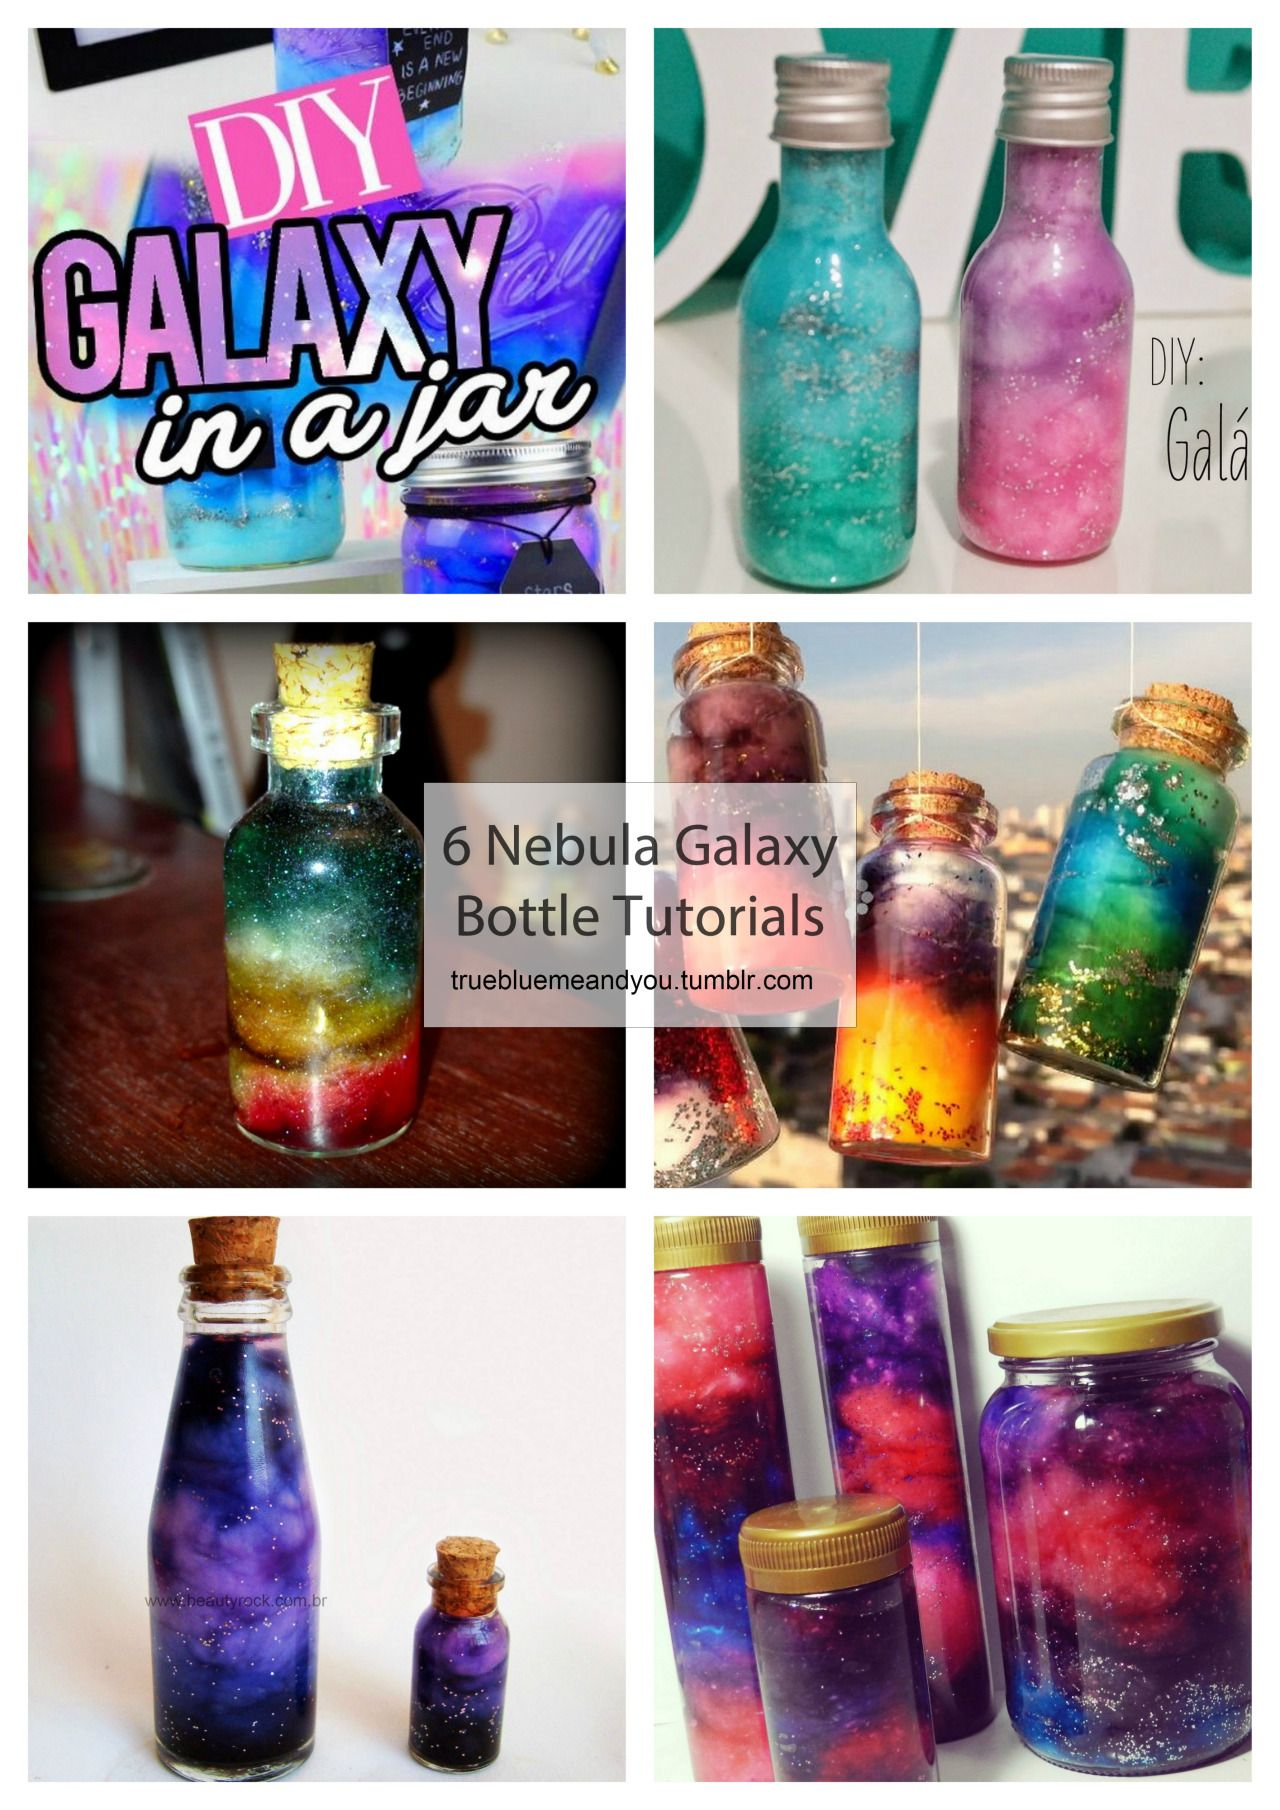 DIY 6 Nebula Galaxy Bottle and Jewelry Tutorials. Roundup from truebluemeandyou.tumblr.com. Have you seen these all over Etsy or on fashion blogs? Most links lead to scape sites and not the actual tutorials - whereas my links go to the original source. These are so cheap to make because all you need is water, cotton, paint-dye-ink, glitter and a container. What I have learned researching nebular or galaxy jars and bottles is that it is better not to use food coloring (some worry about…